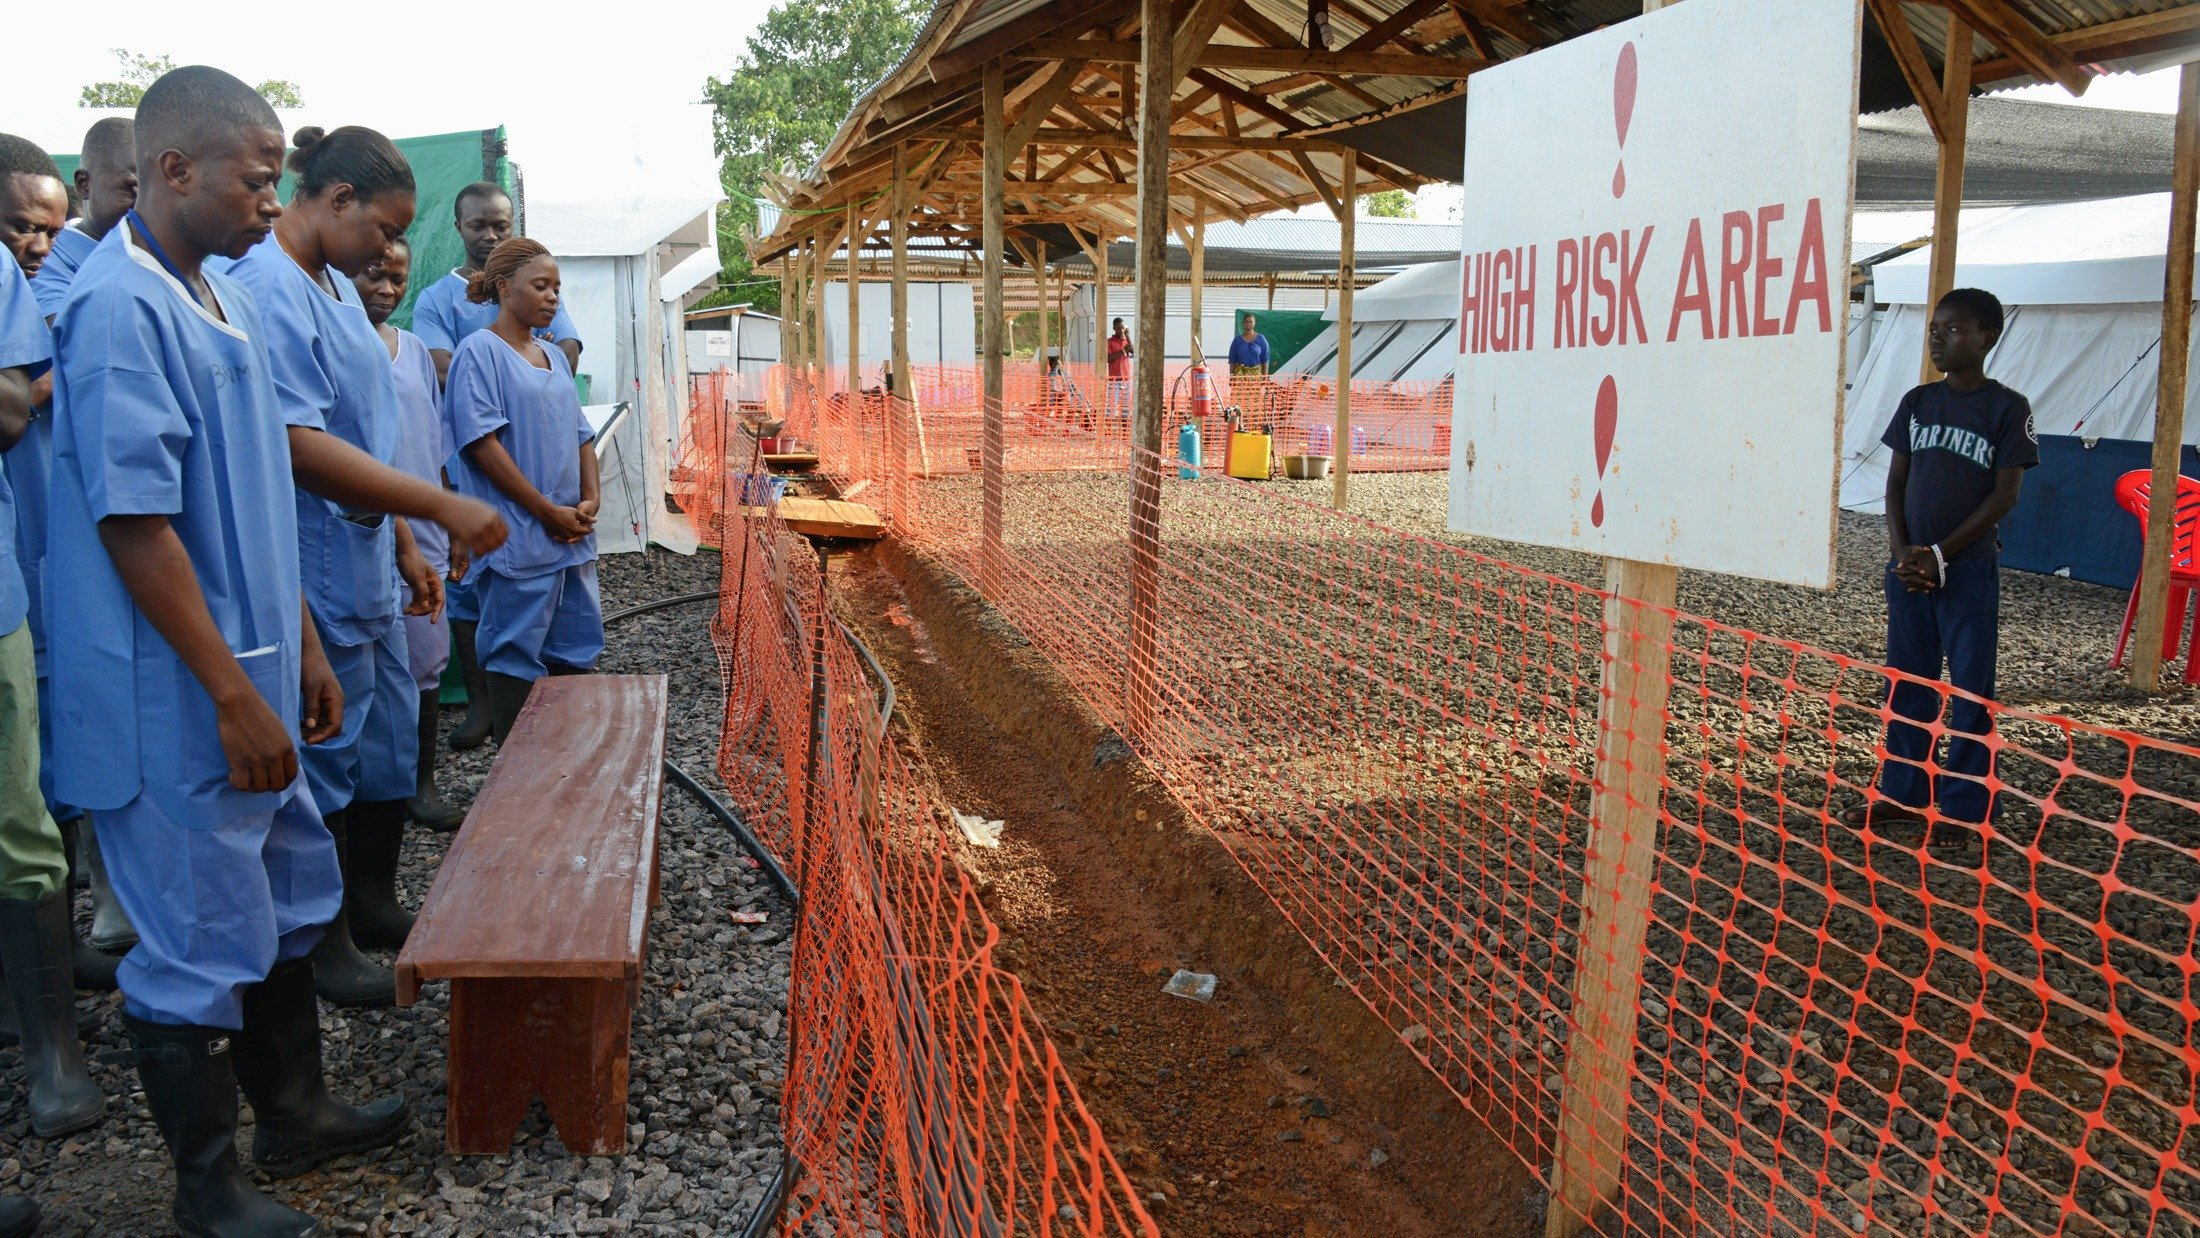 IFRC health workers start the day praying with Ebola patients in the outside area in front of their tents (October 2014)